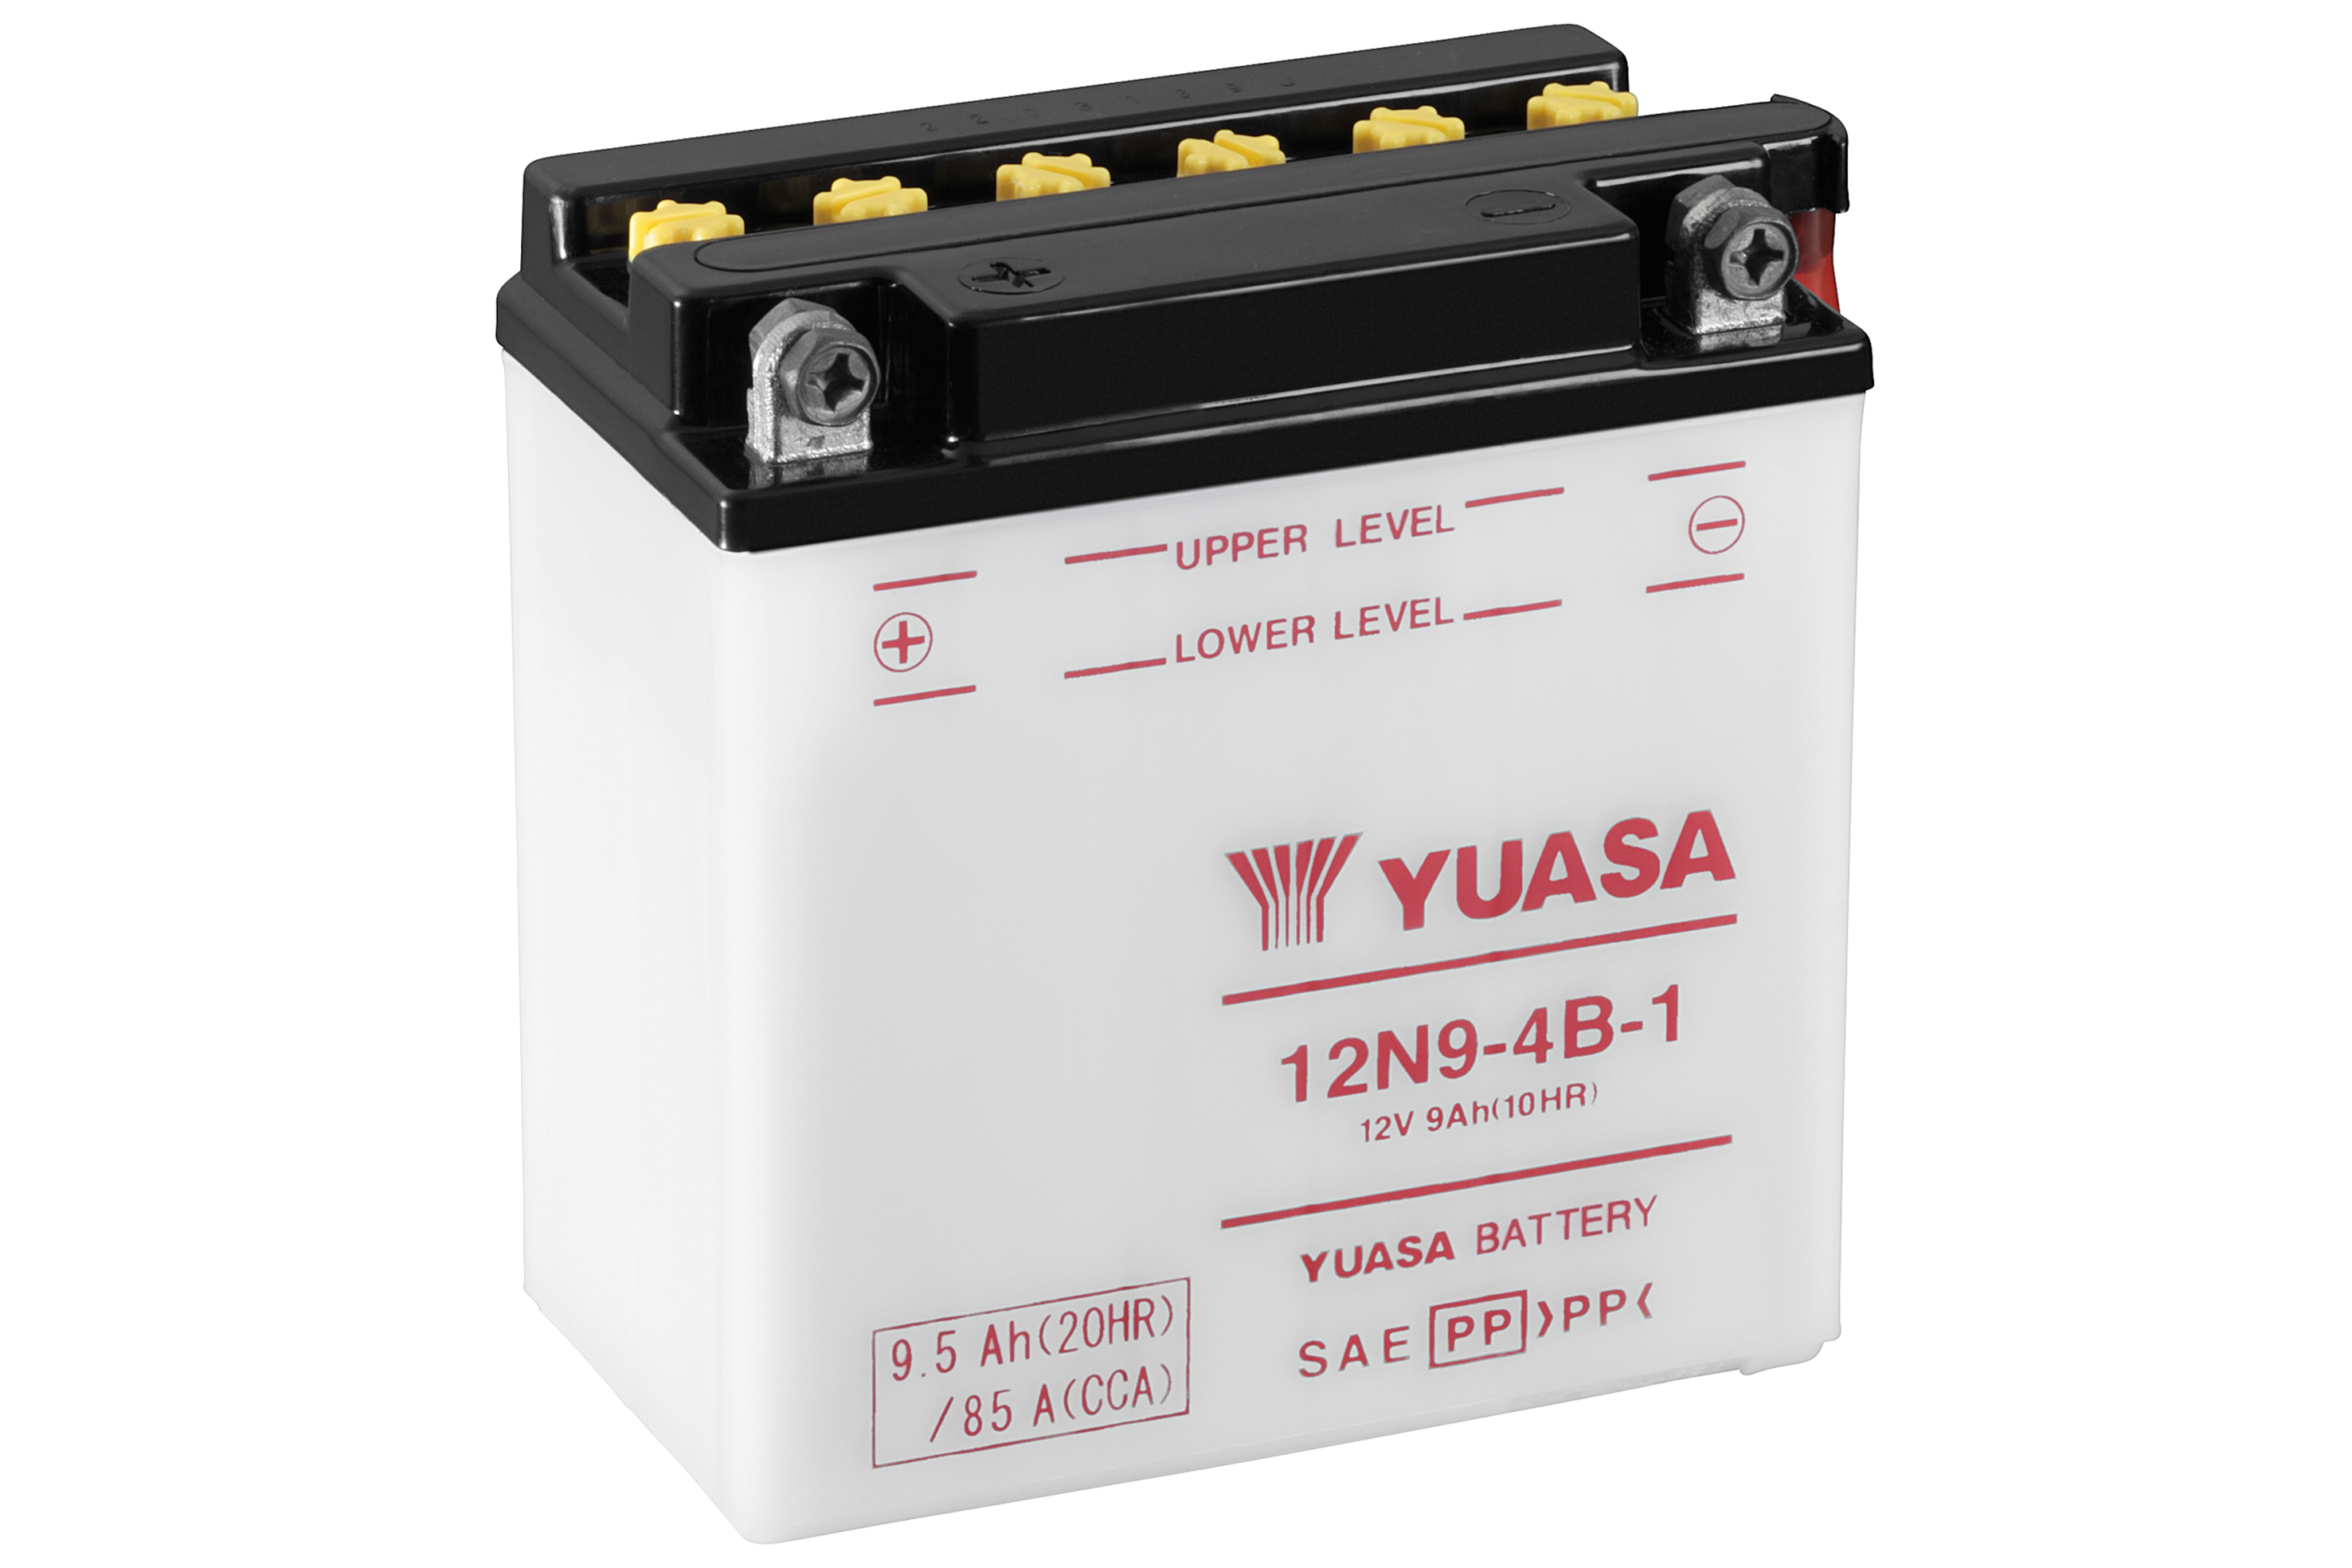 yuasa motorcycle battery 12n9 4b 1 12v 9ah from county battery. Black Bedroom Furniture Sets. Home Design Ideas